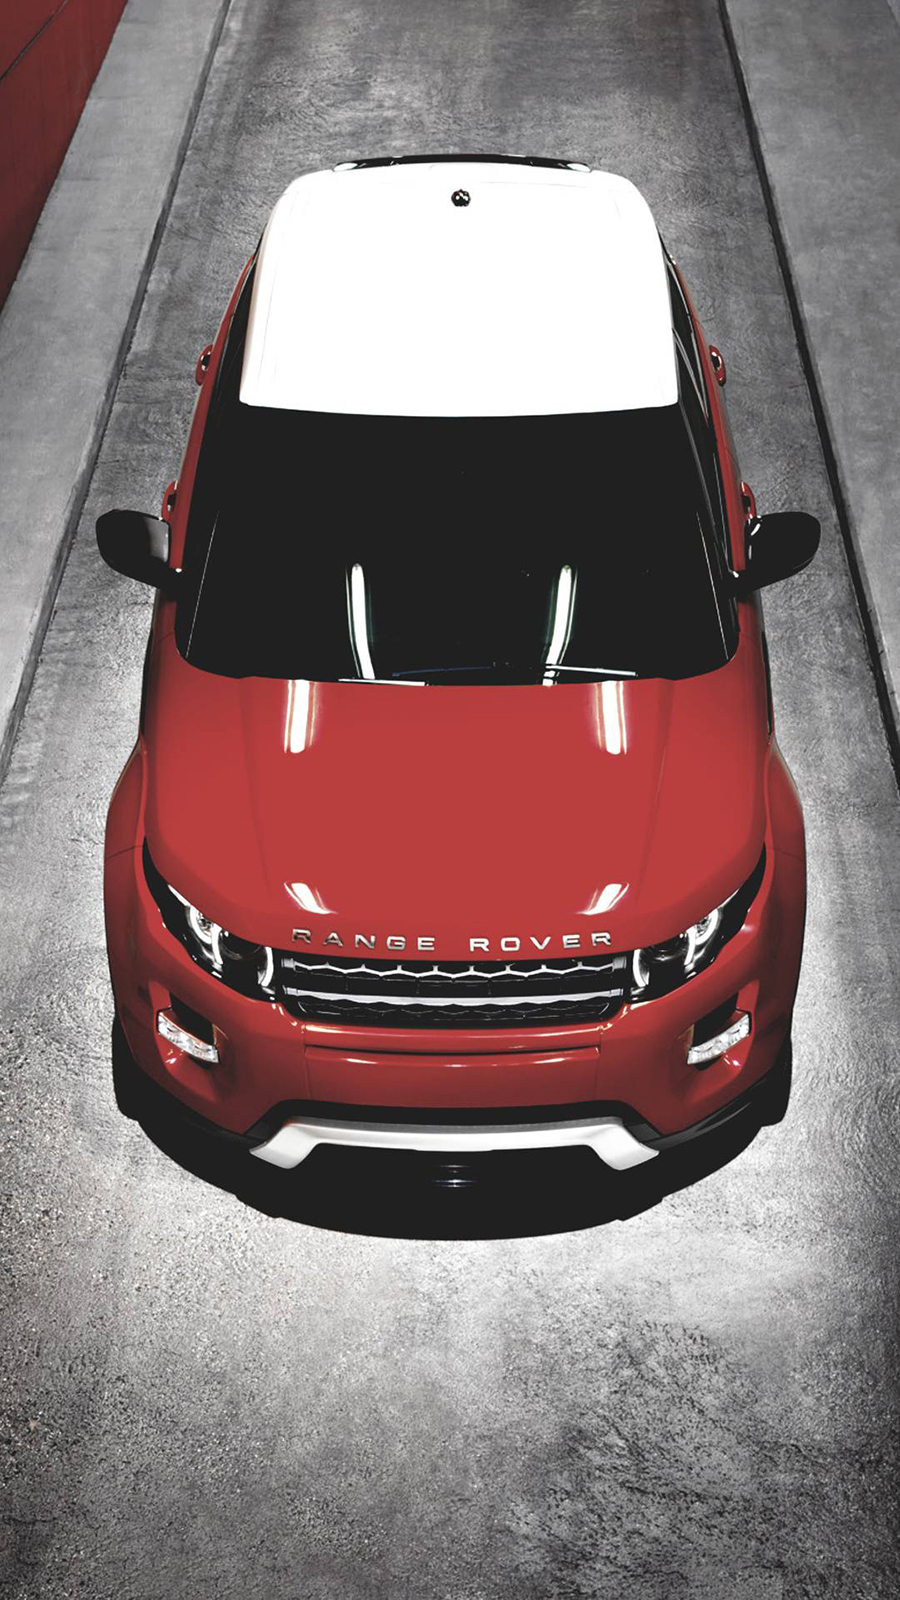 Range Rover Suv Car Full HD Wallpapers Free Download For Your Device